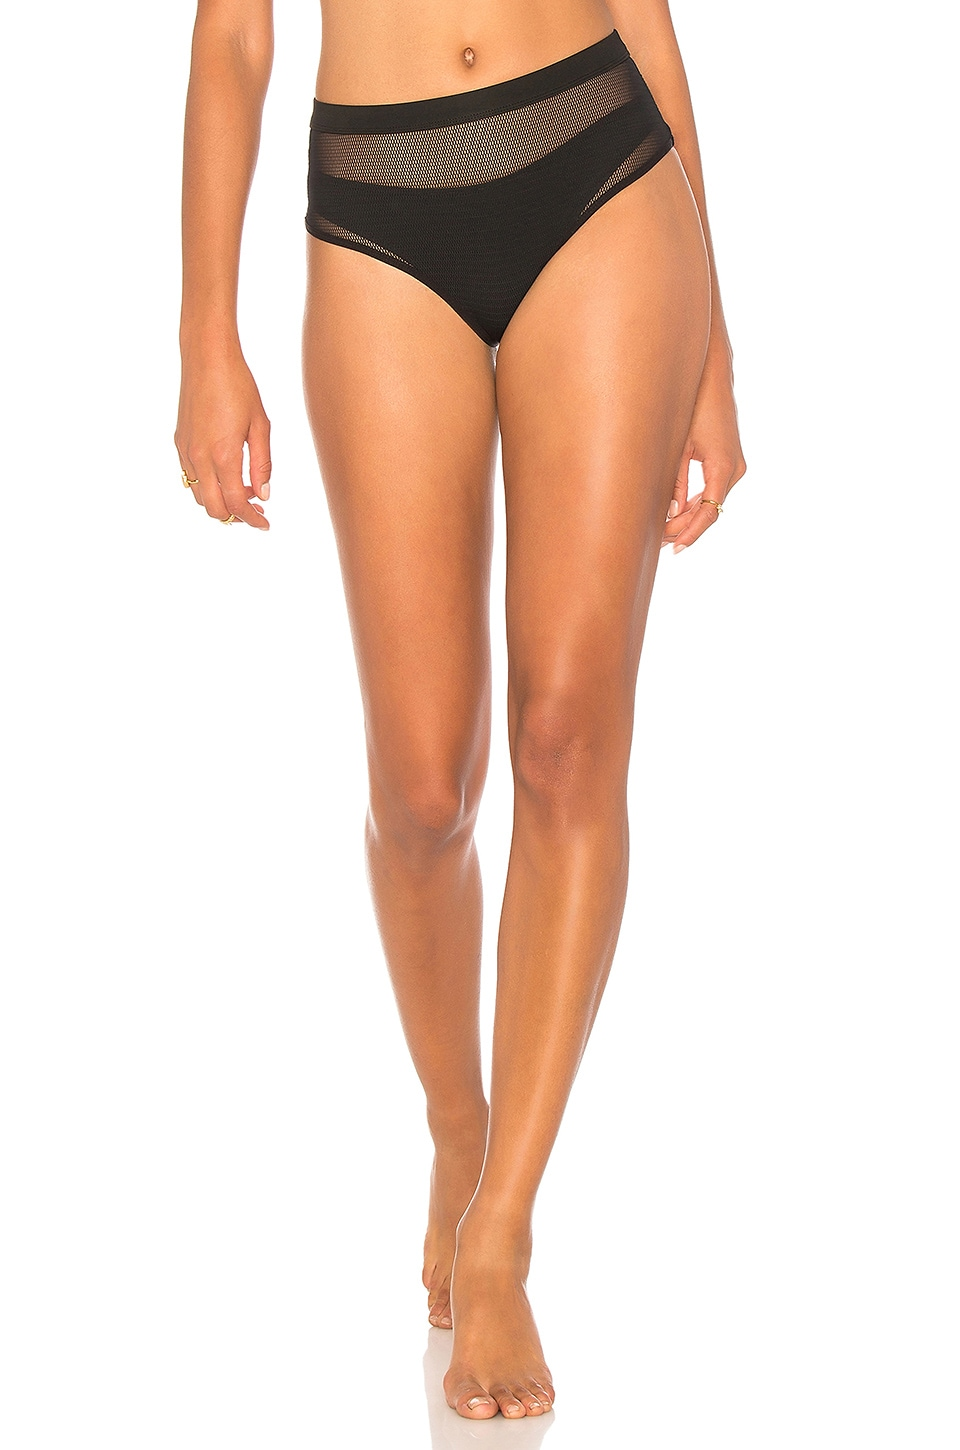 KENDALL + KYLIE X REVOLVE Mesh High Waisted Bottom in Black